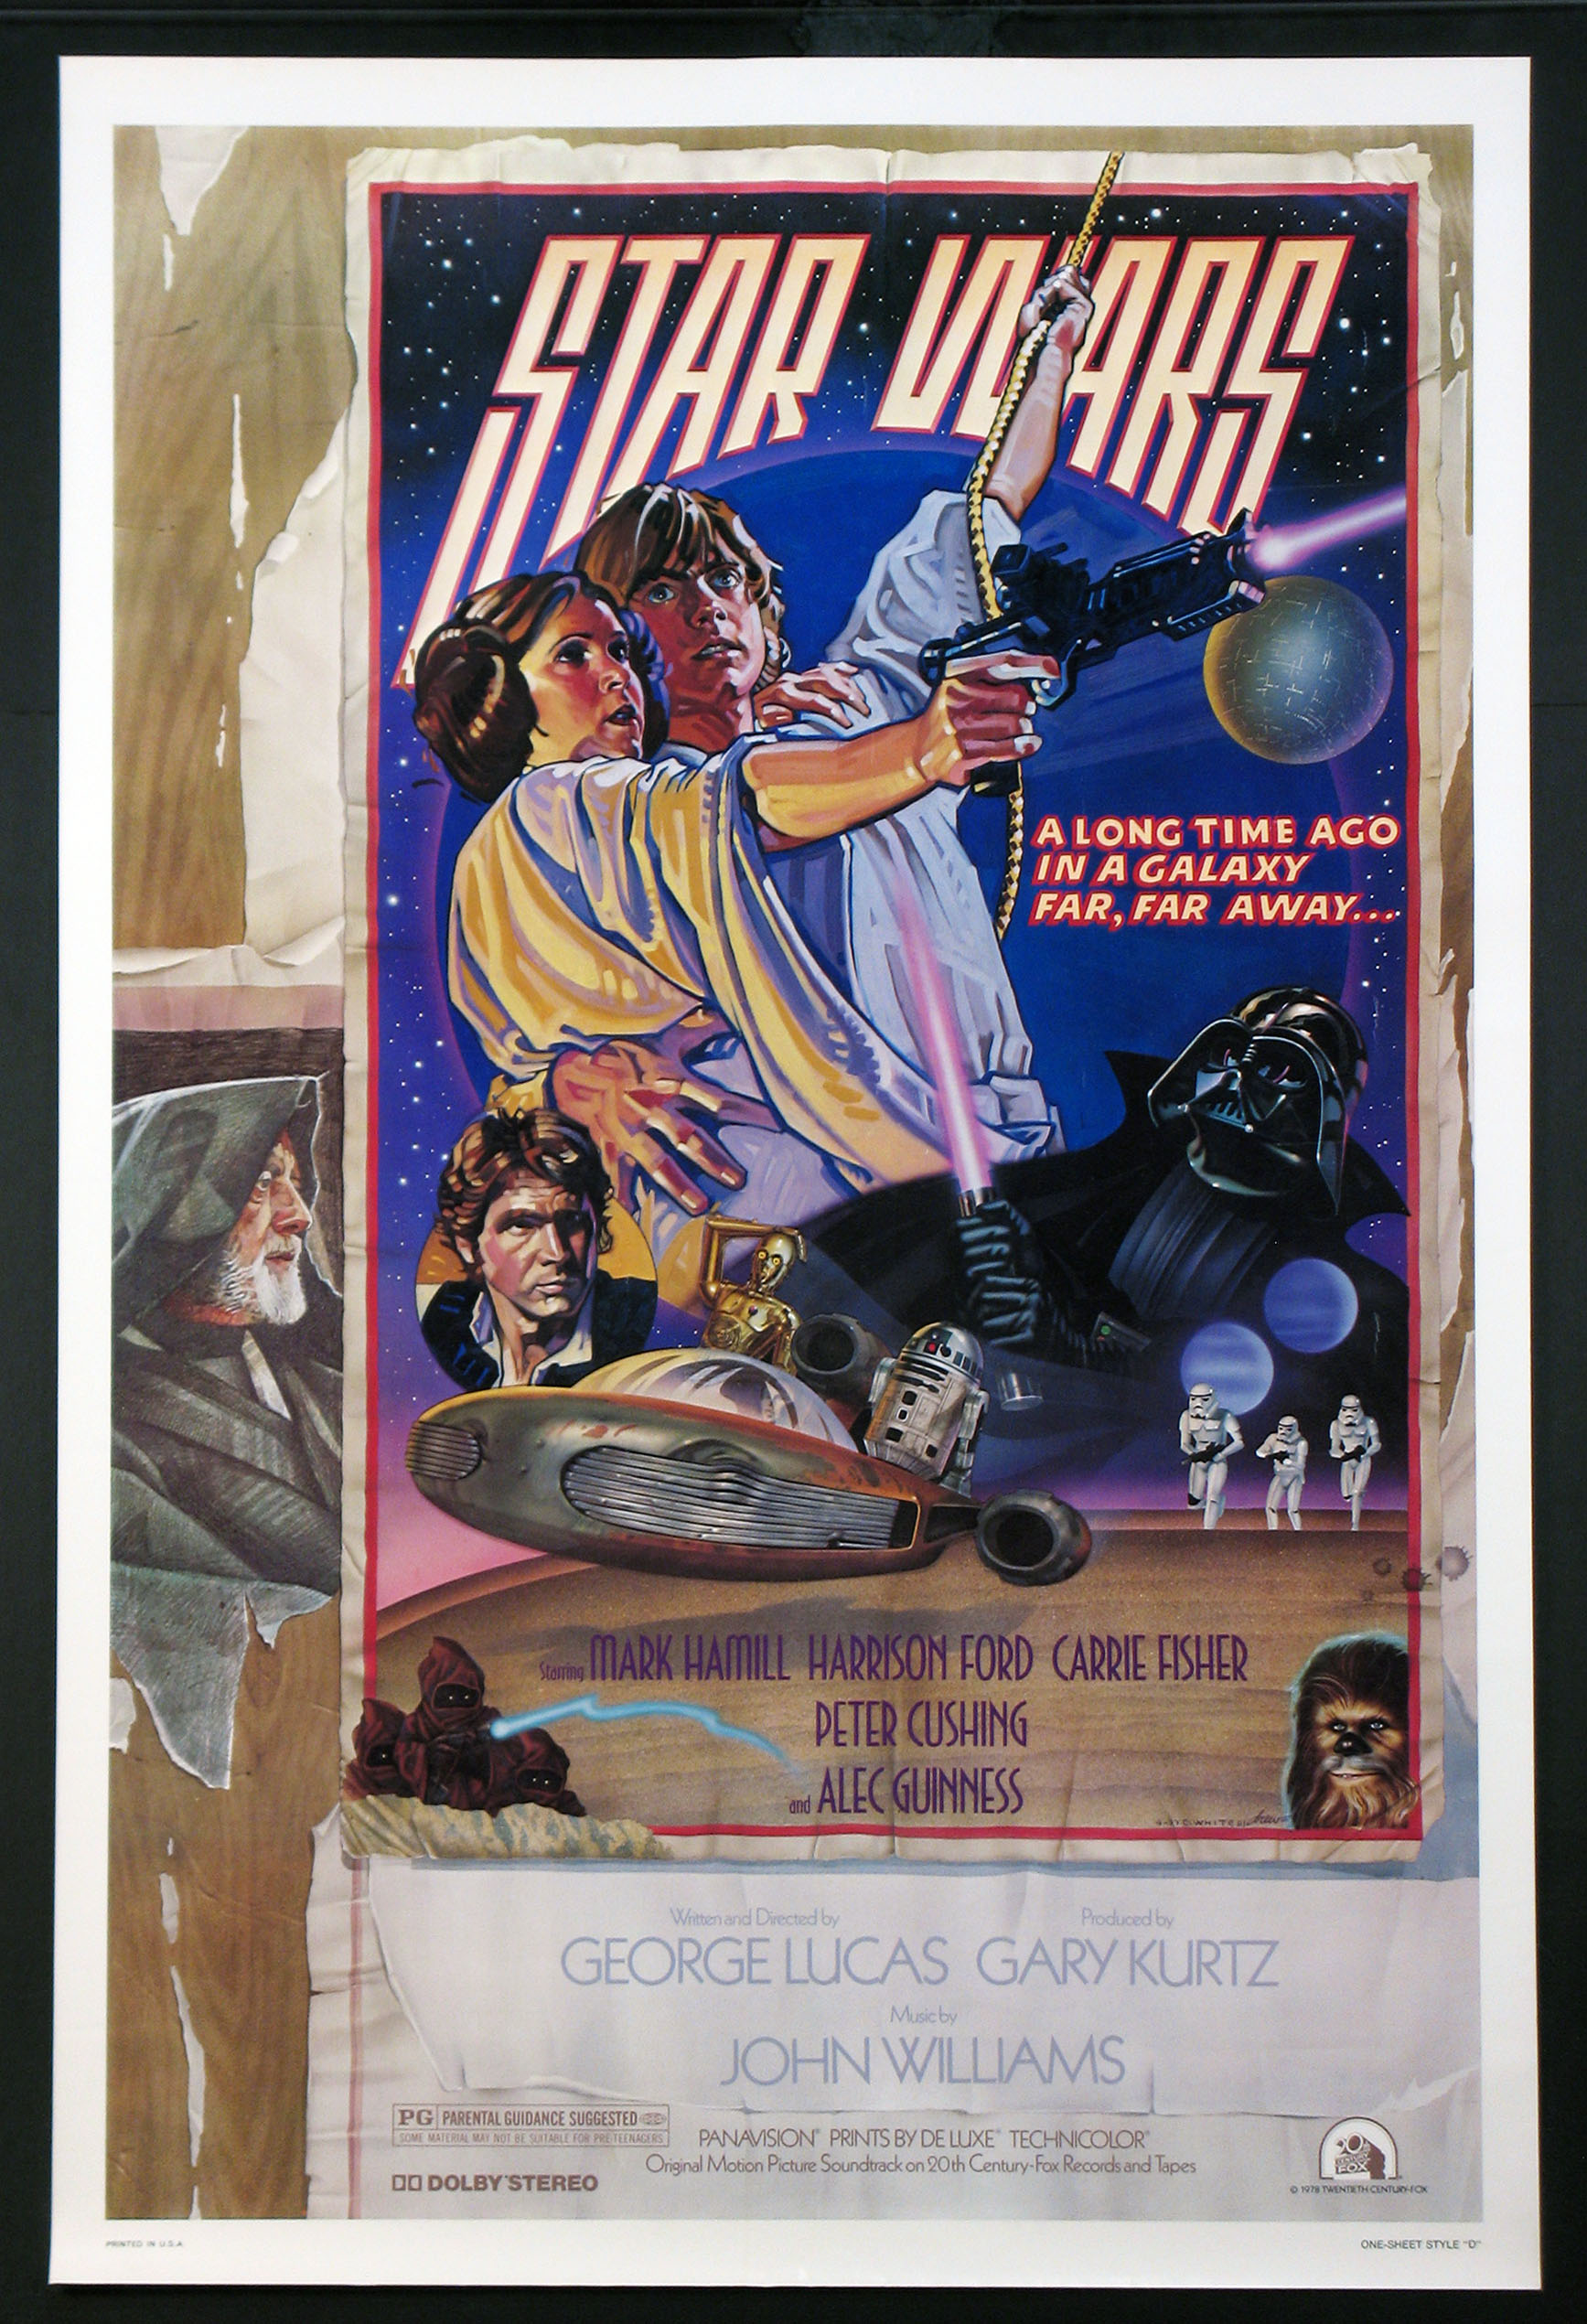 STAR WARS @ FilmPosters.com